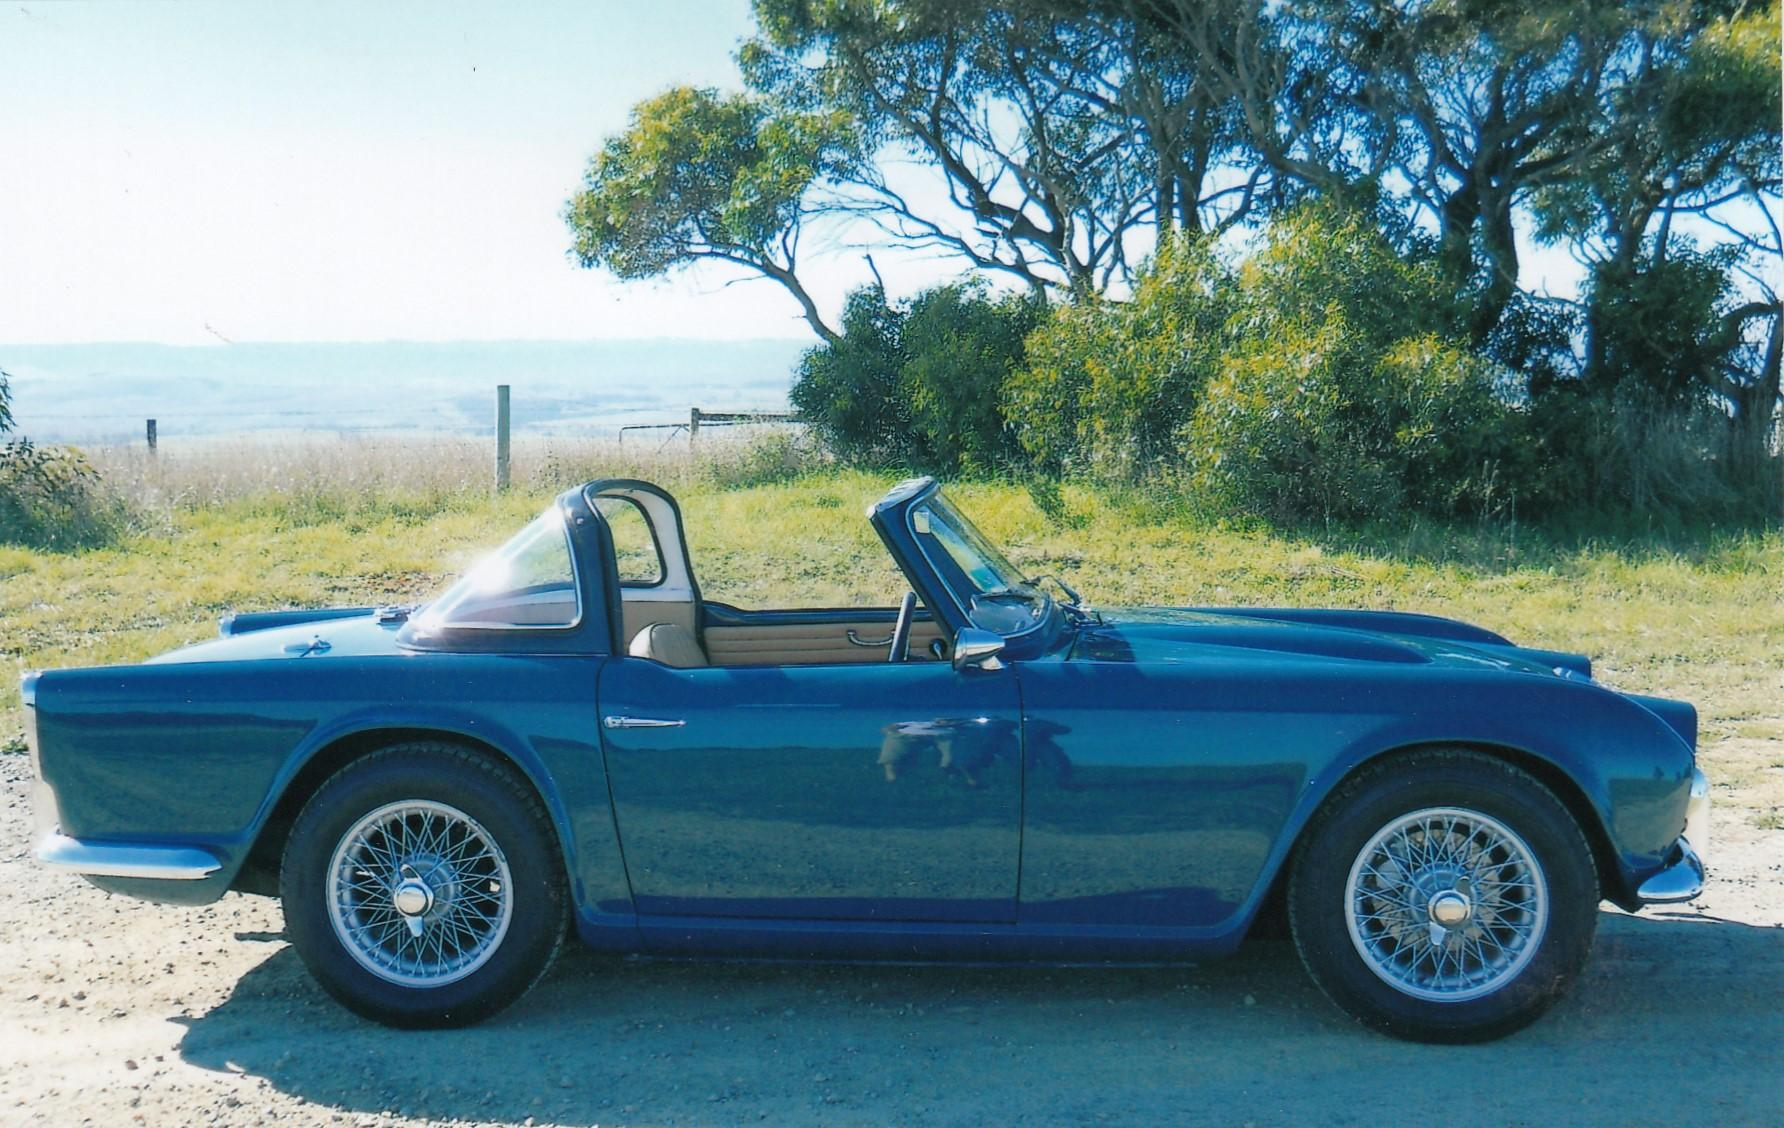 1963 Triumph Tr4 2d Sports Jcw5040069 Just Cars